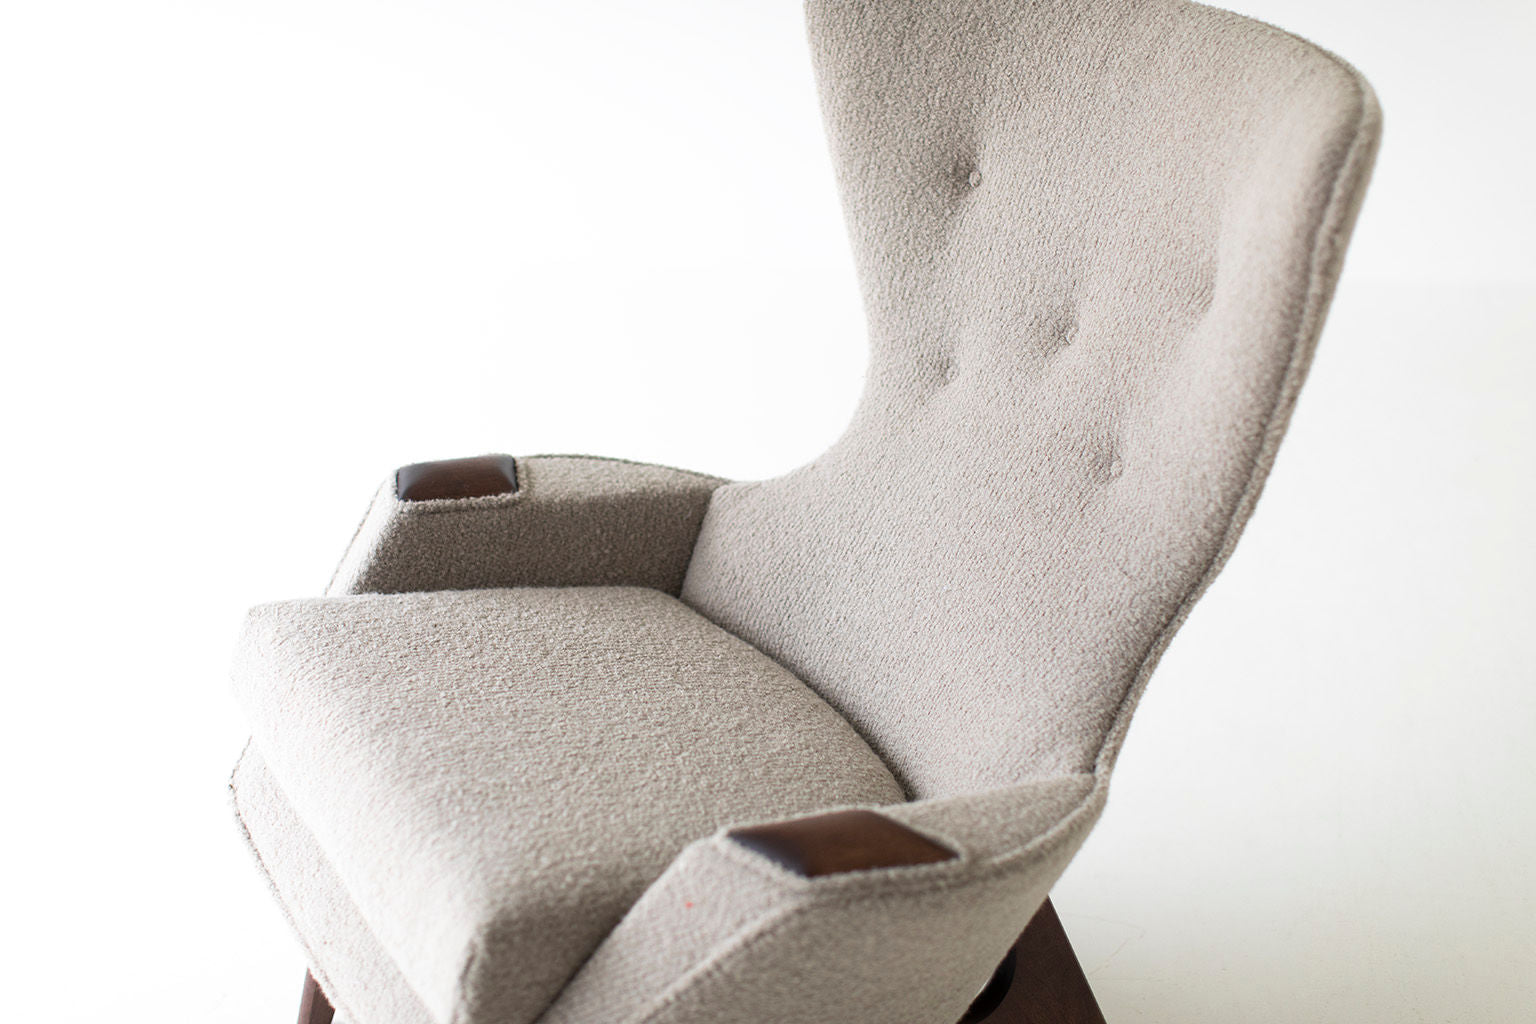 0T3A8986-wing-chair-06